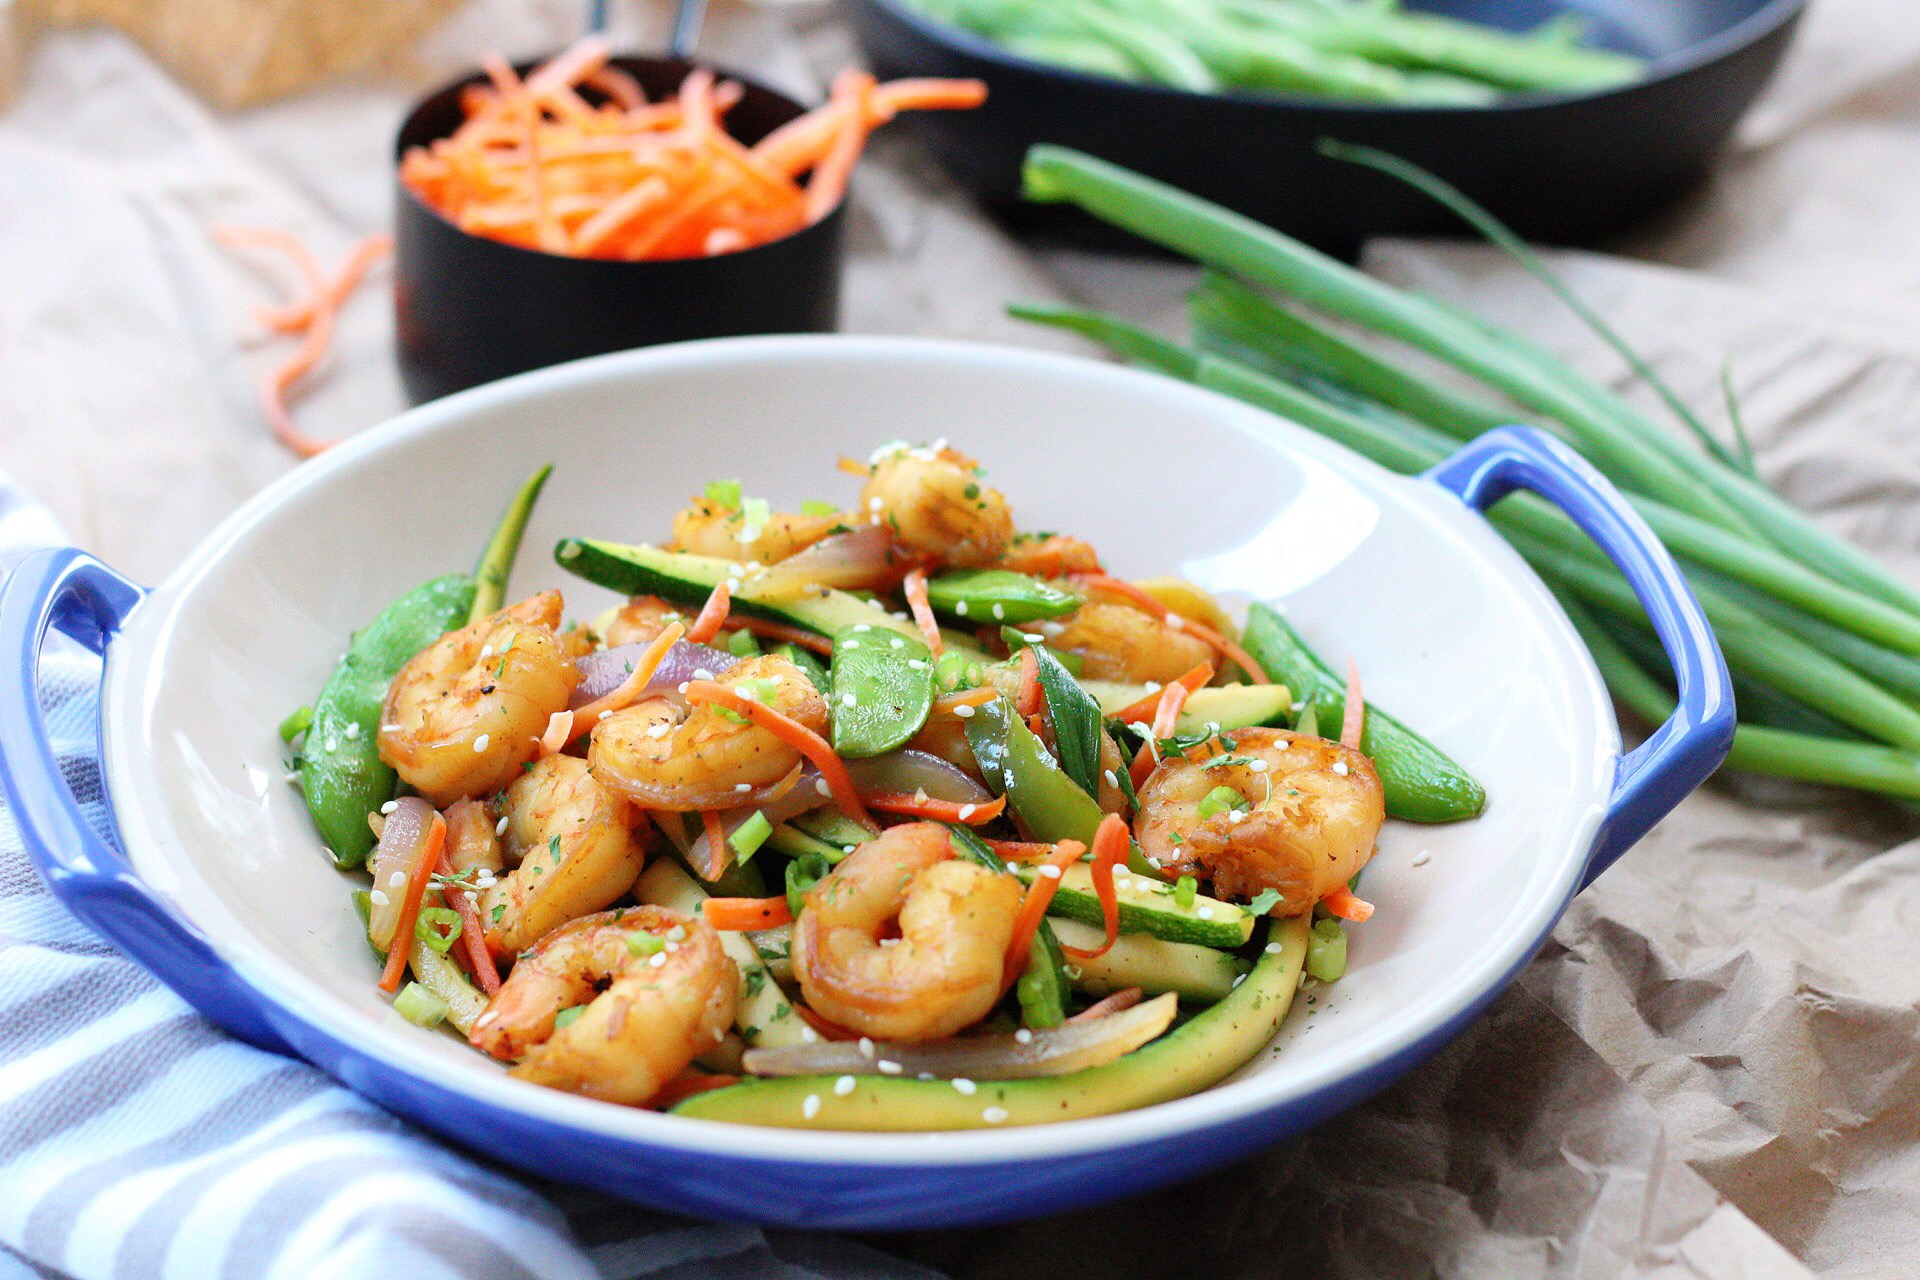 Shrimp Stir Fry: Paleo, Whole30 & Low Carb + Tips for Cooking With Gelatin